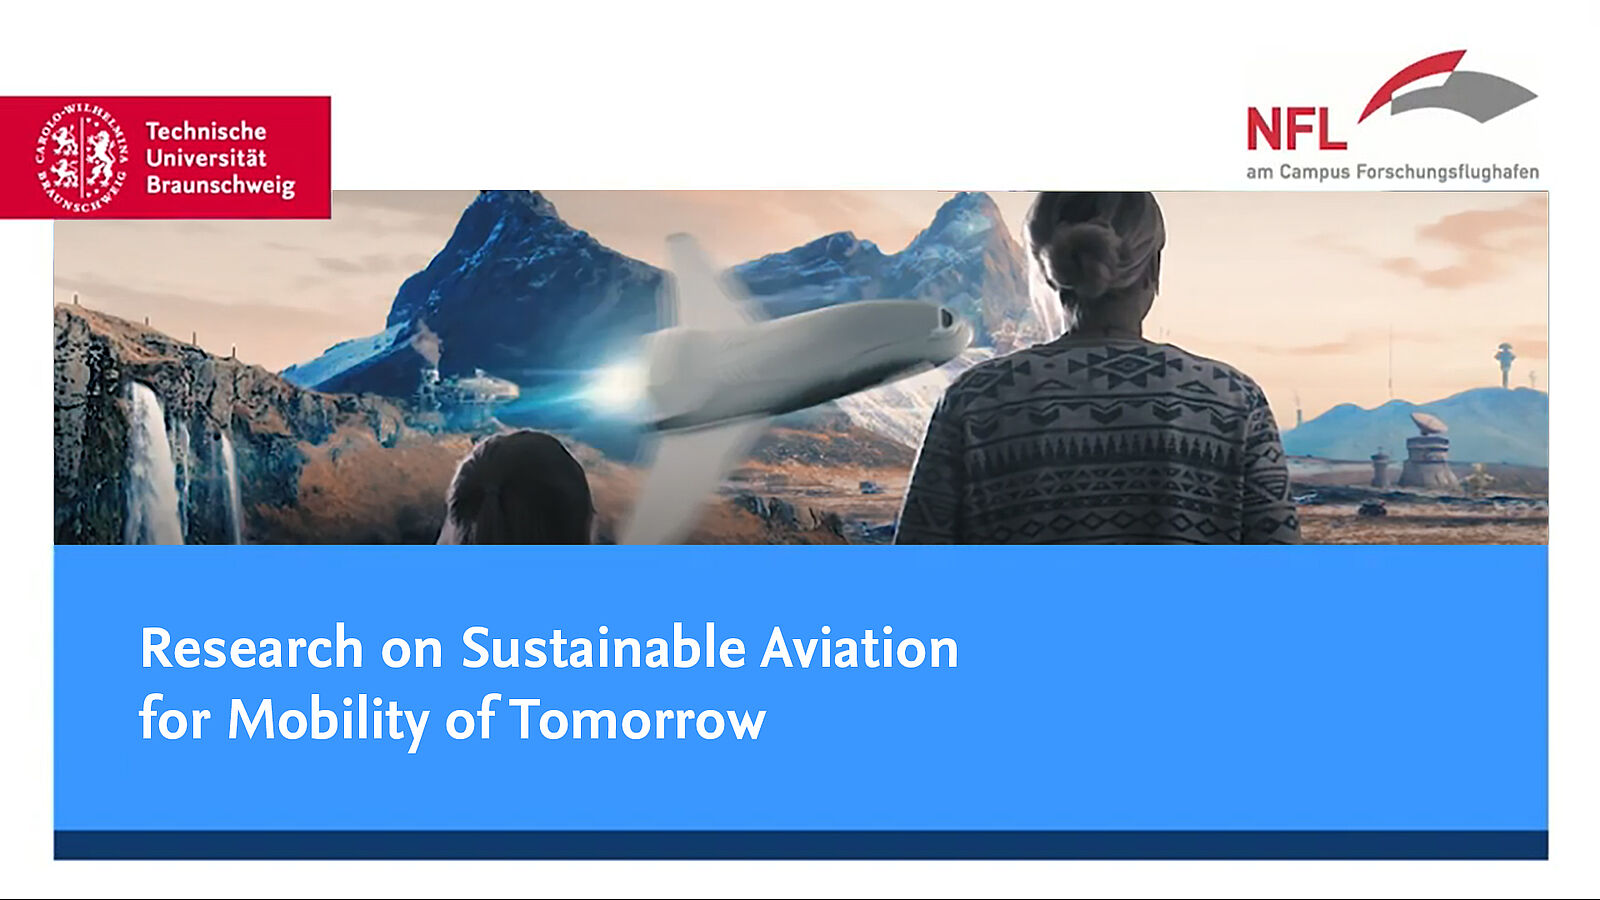 Sustainable Aviation for Mobility of Tomorrow